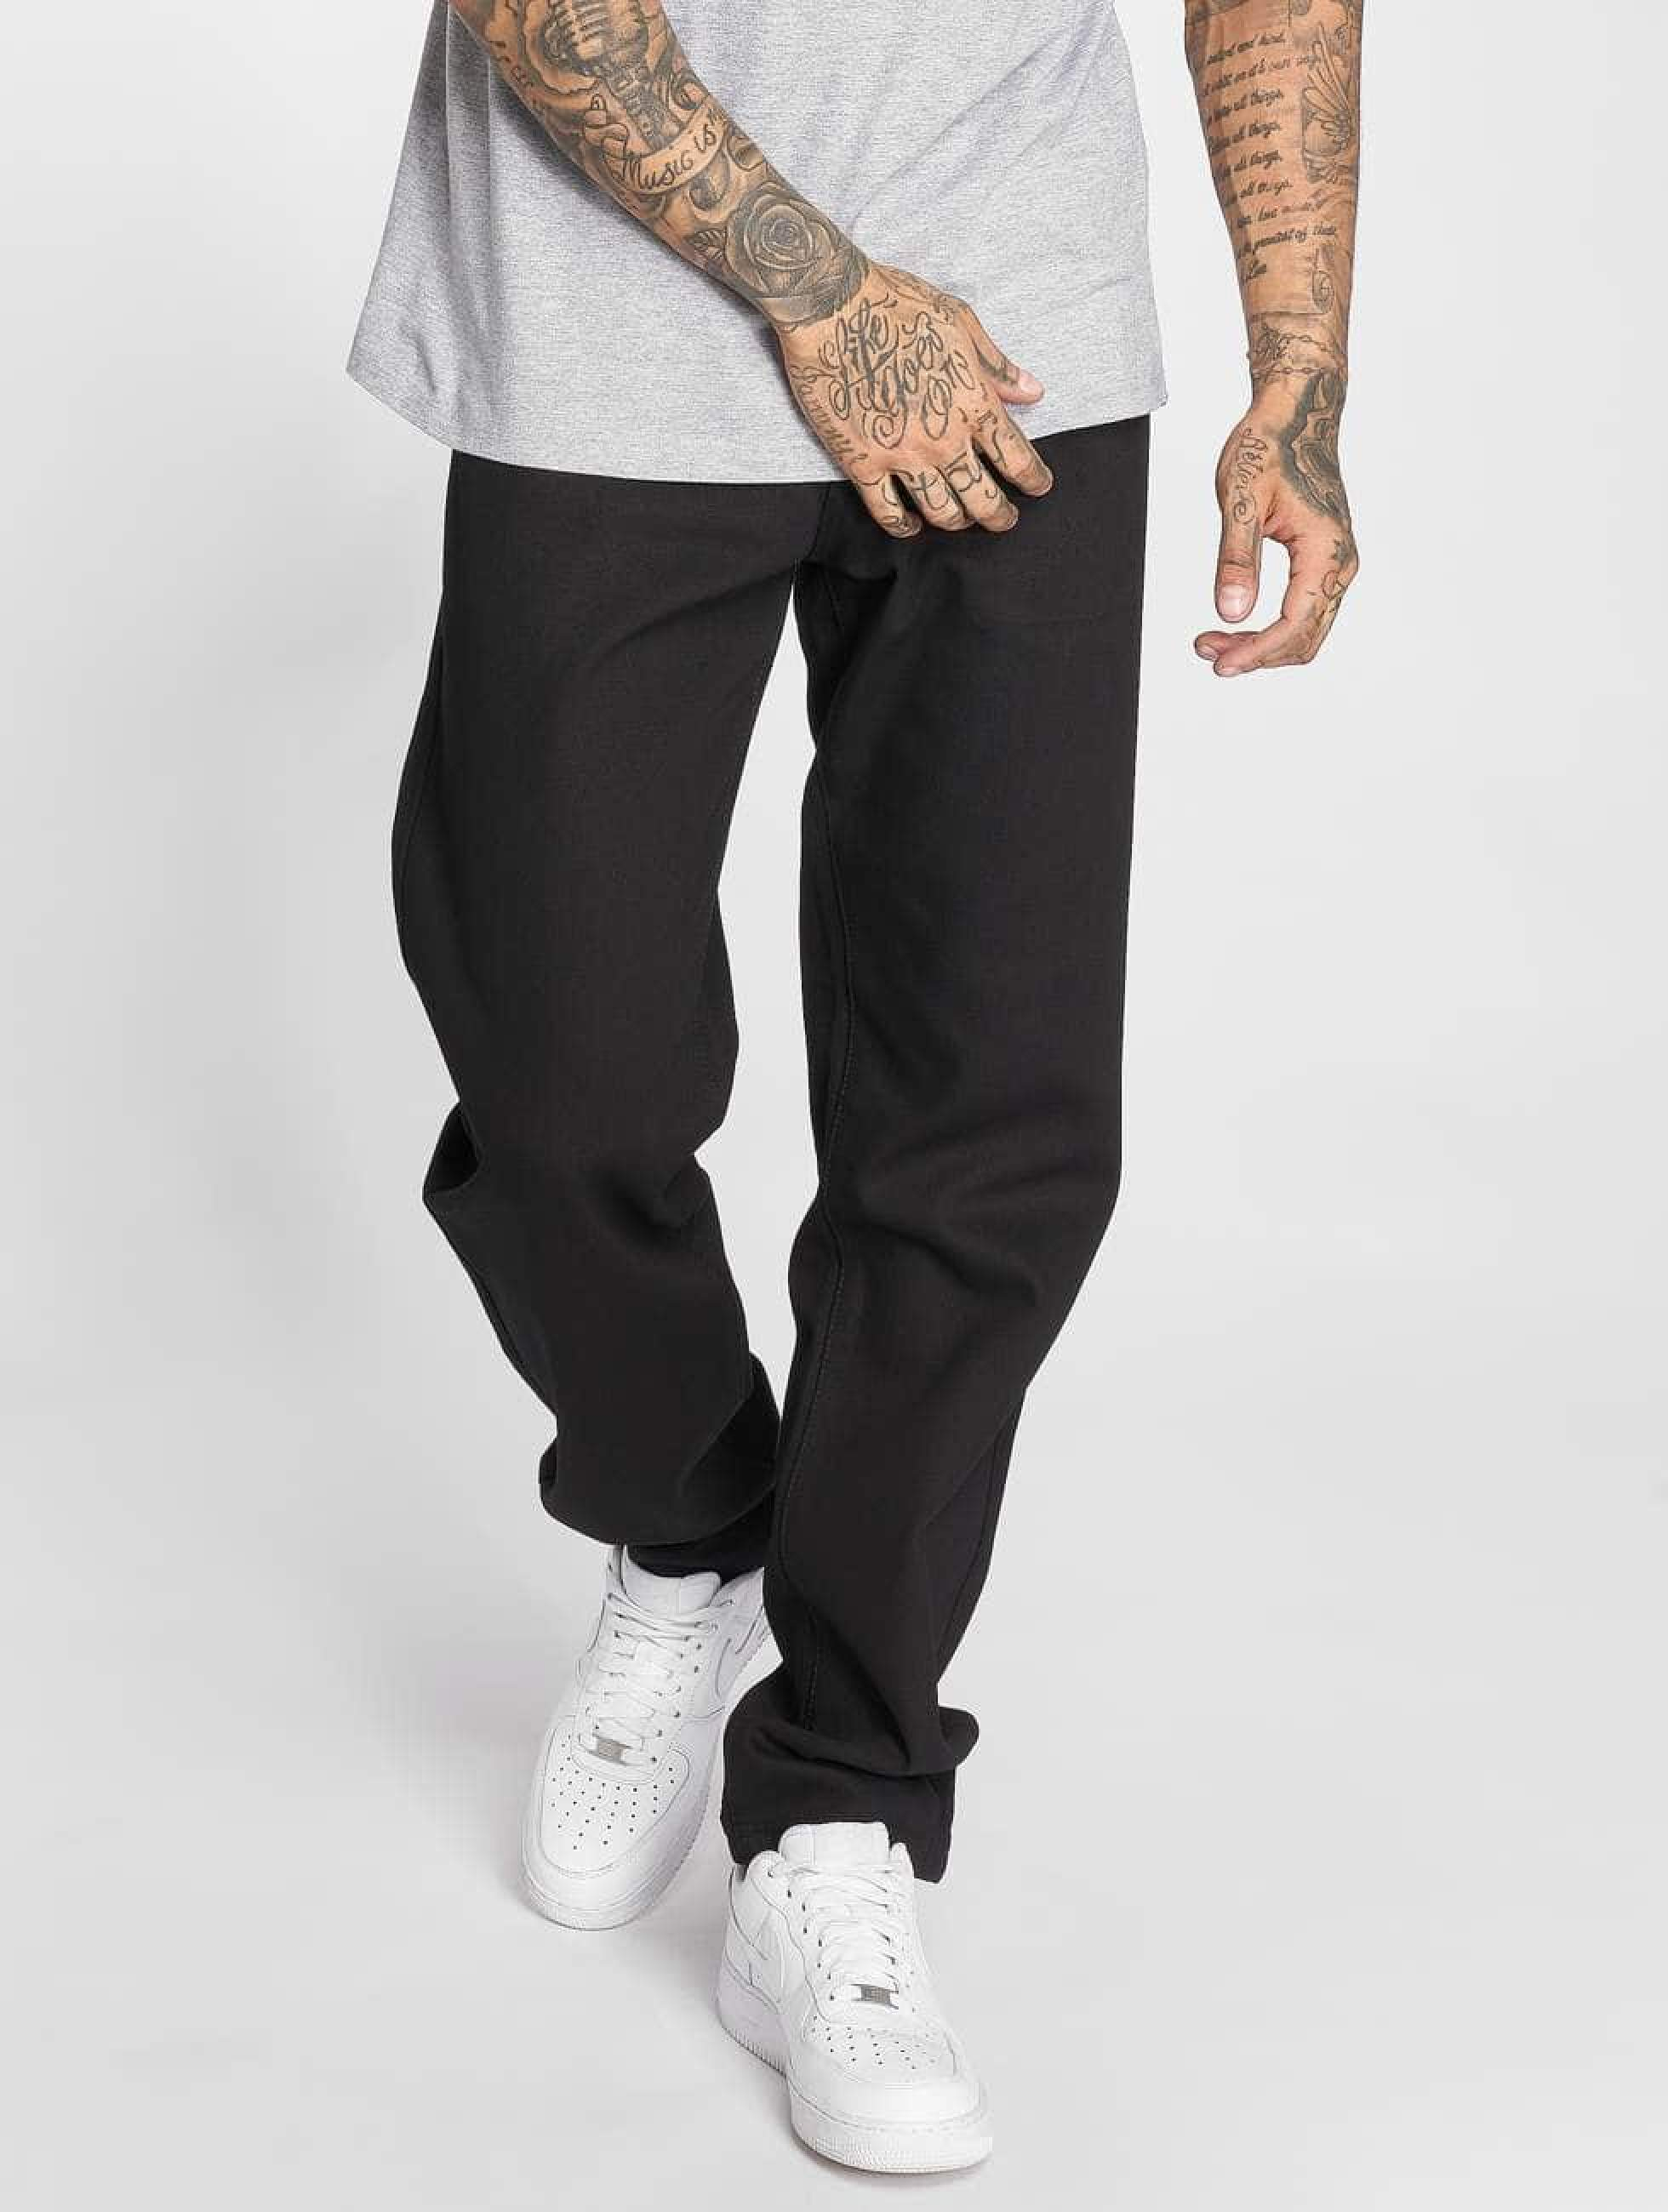 Thug Life / Carrot Fit Jeans B . Denim in black W 33 L 34